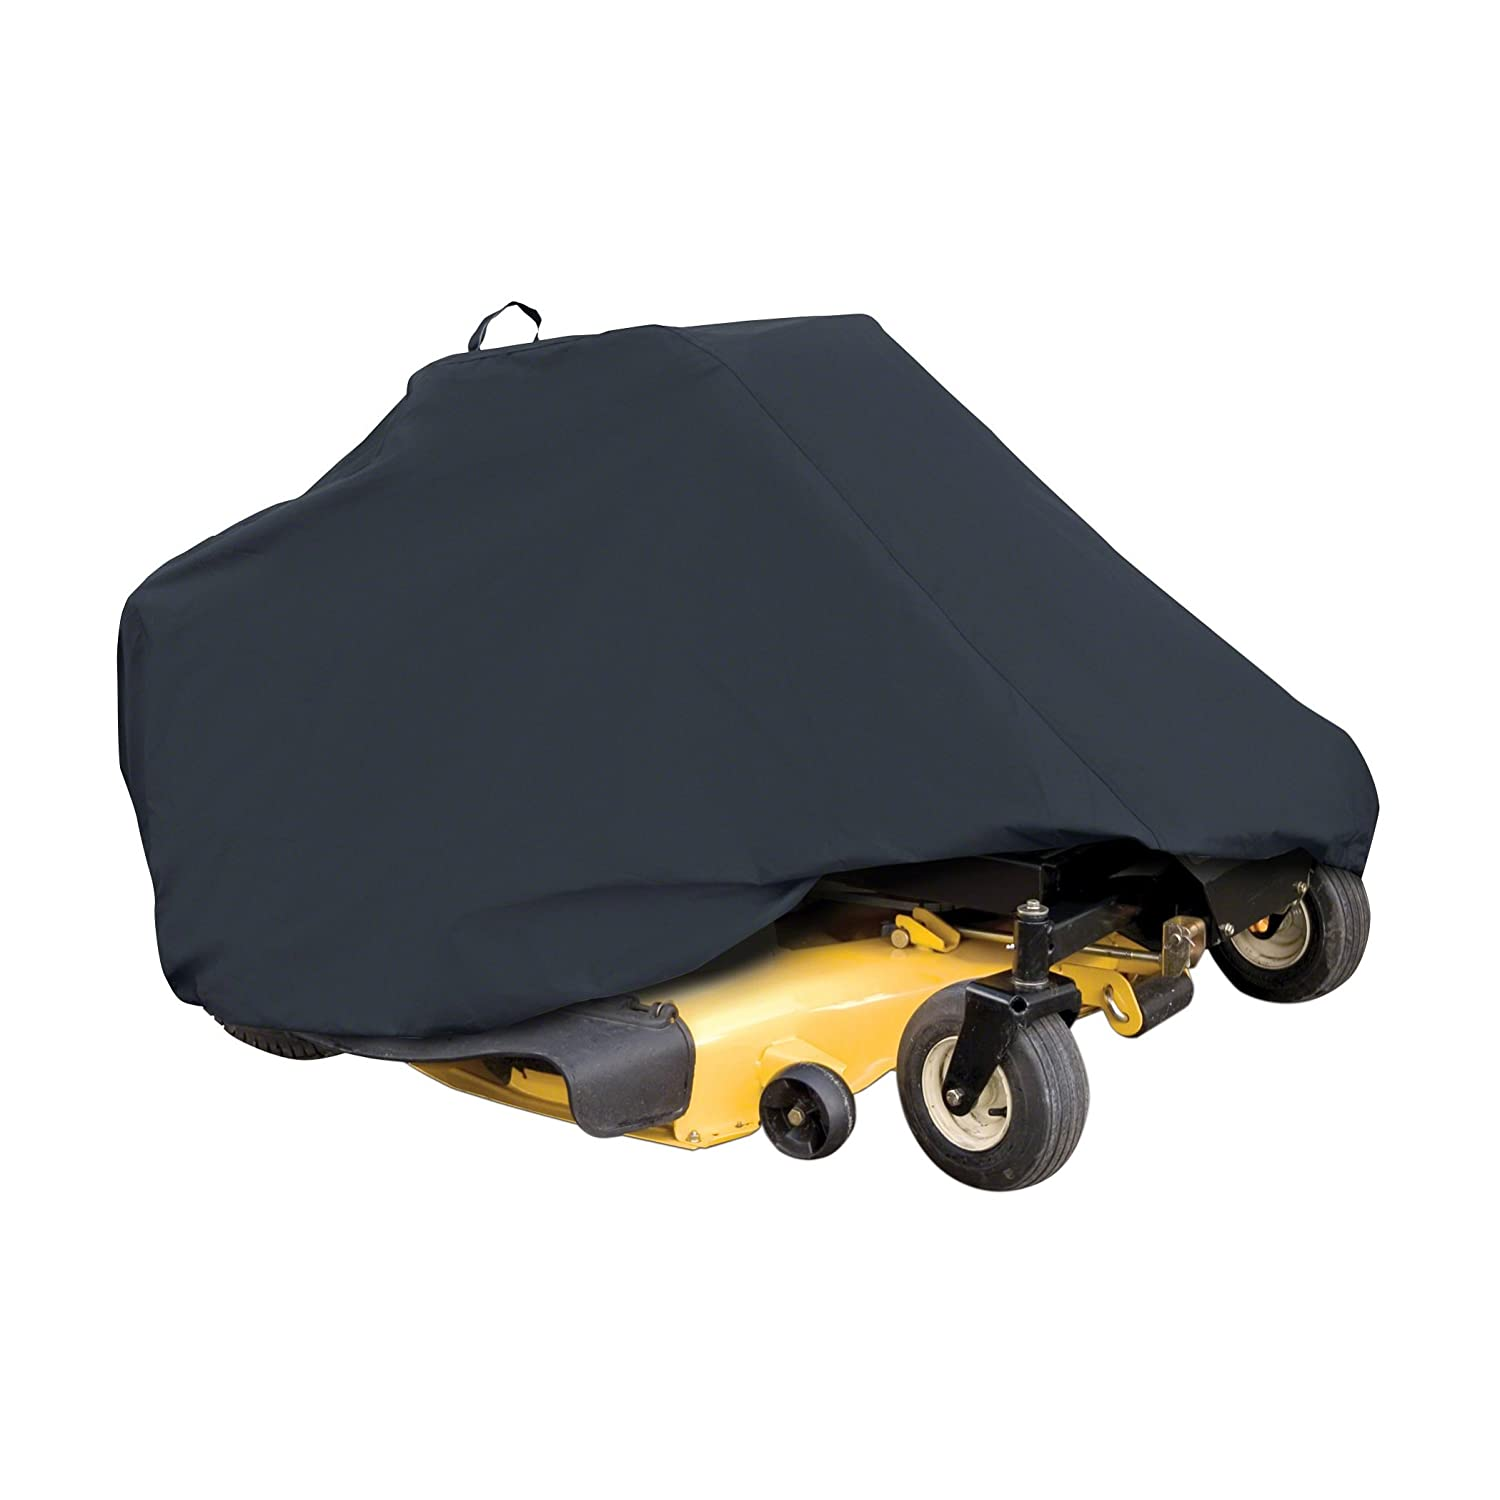 Classic Accessories 52-150-040401-00 Zero Turn Riding Mower Cover, Black, Up to 60 Decks Up to 60 Decks